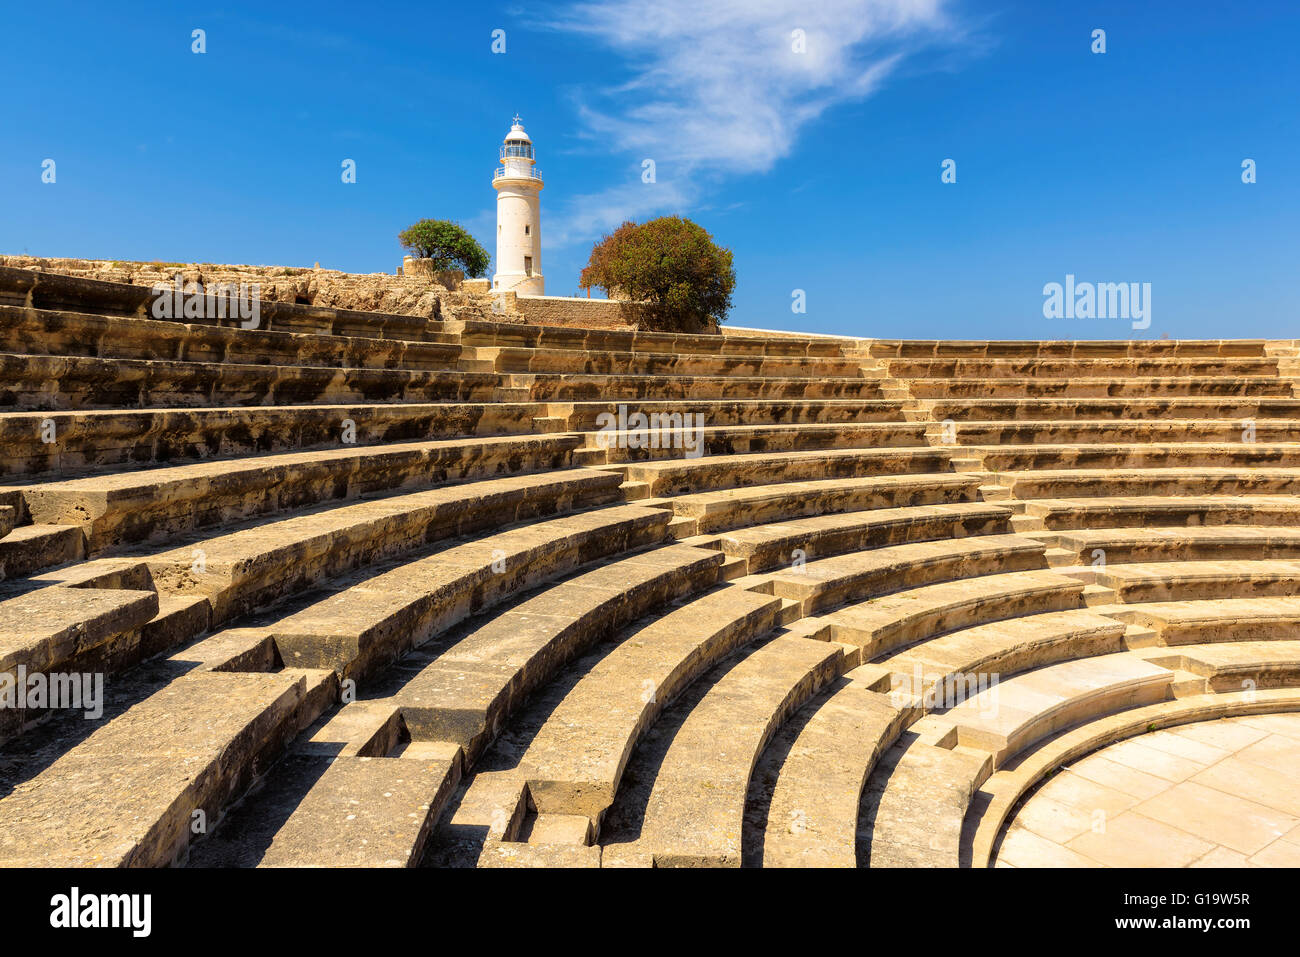 Odeion Agora and Paphos Lighthouse, Cyprus. - Stock Image